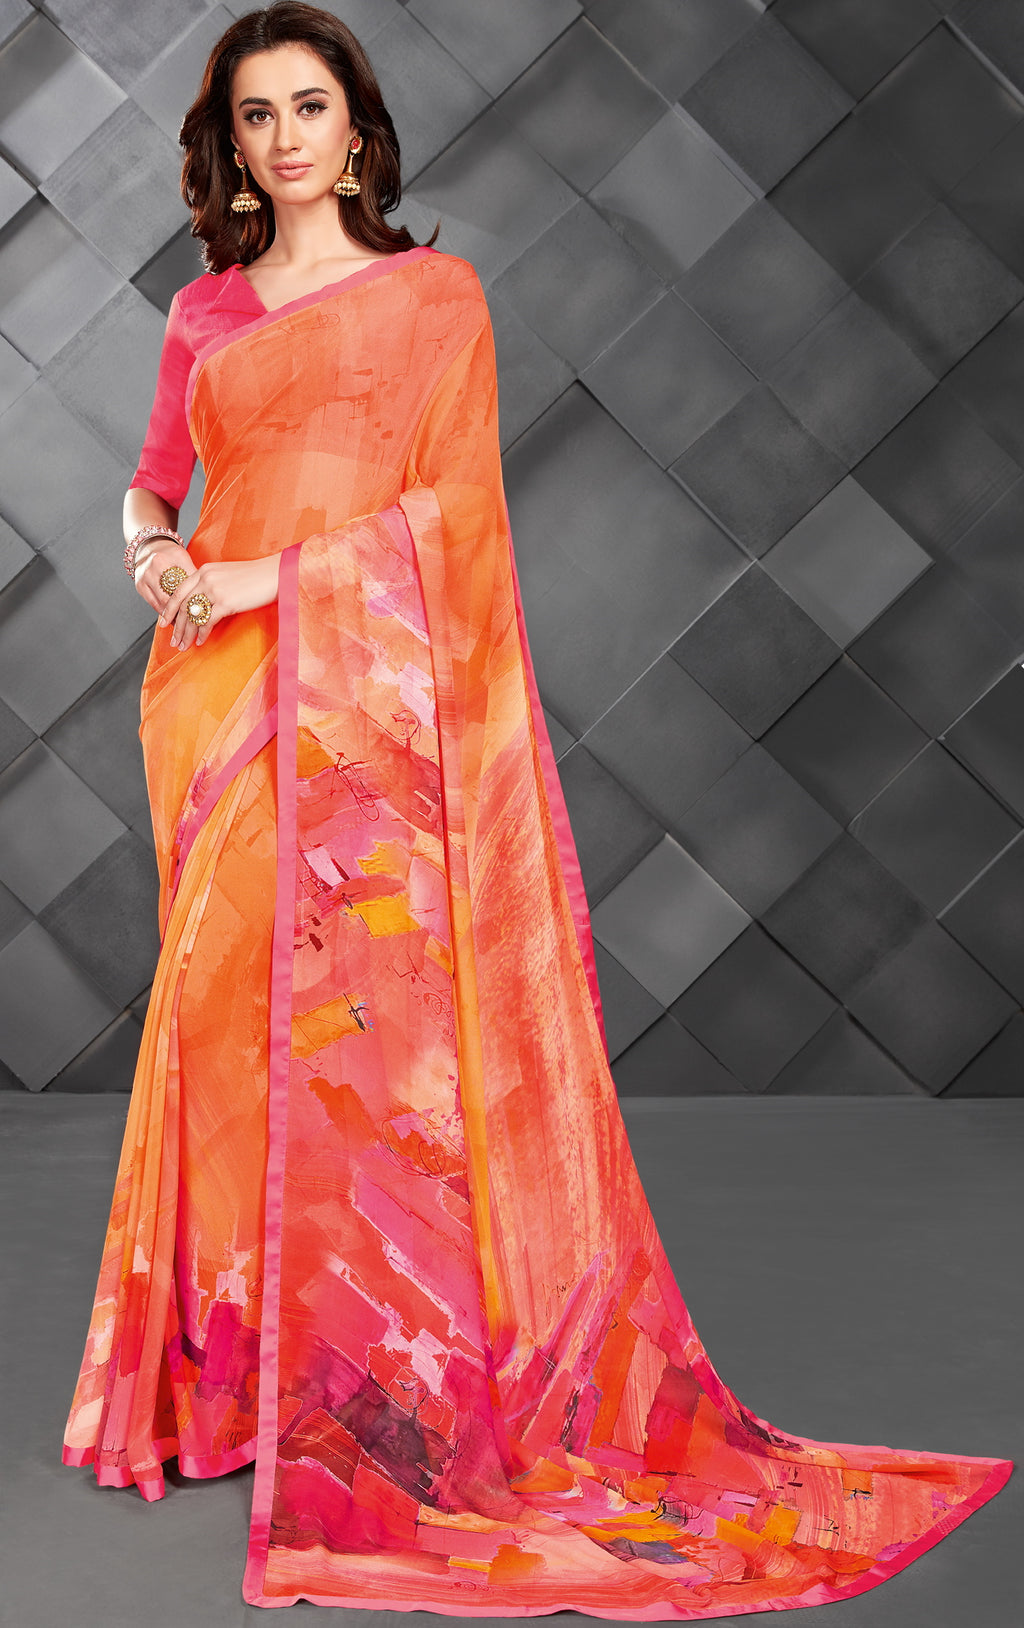 Orange & Pink Color Georgette Splendid Kitty Party Sarees NYF-6392